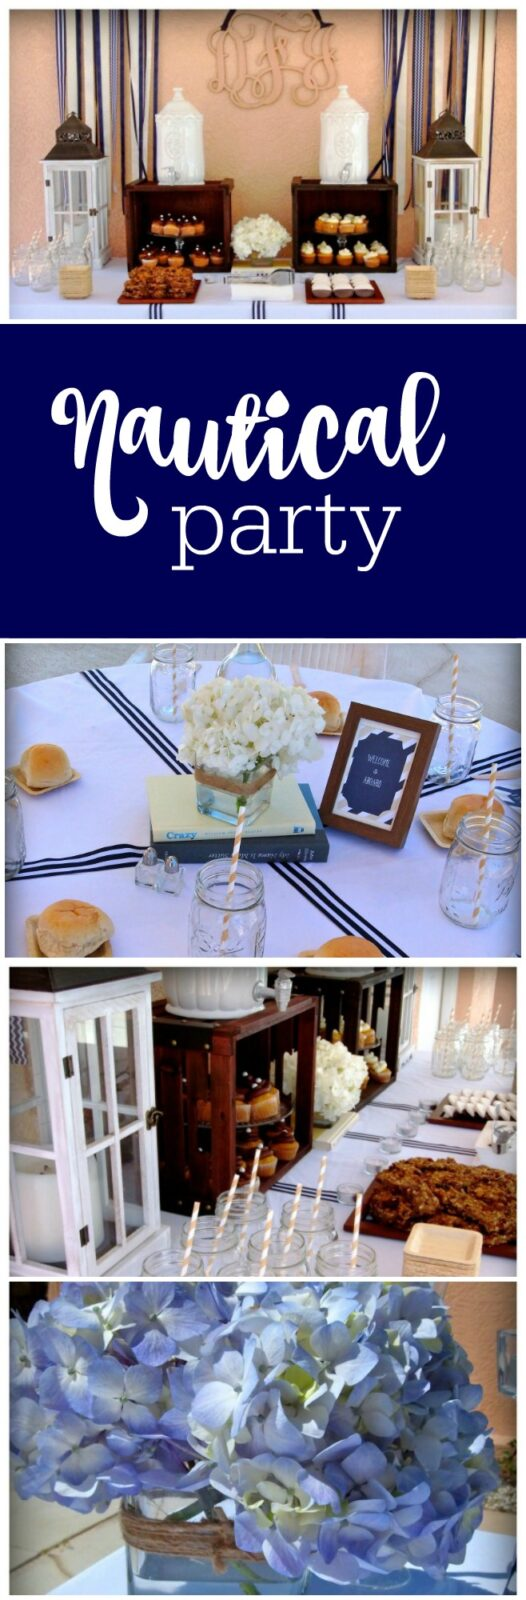 Nautical birthday party by A Stylish Affair by Jessie featured on The Party Teacher